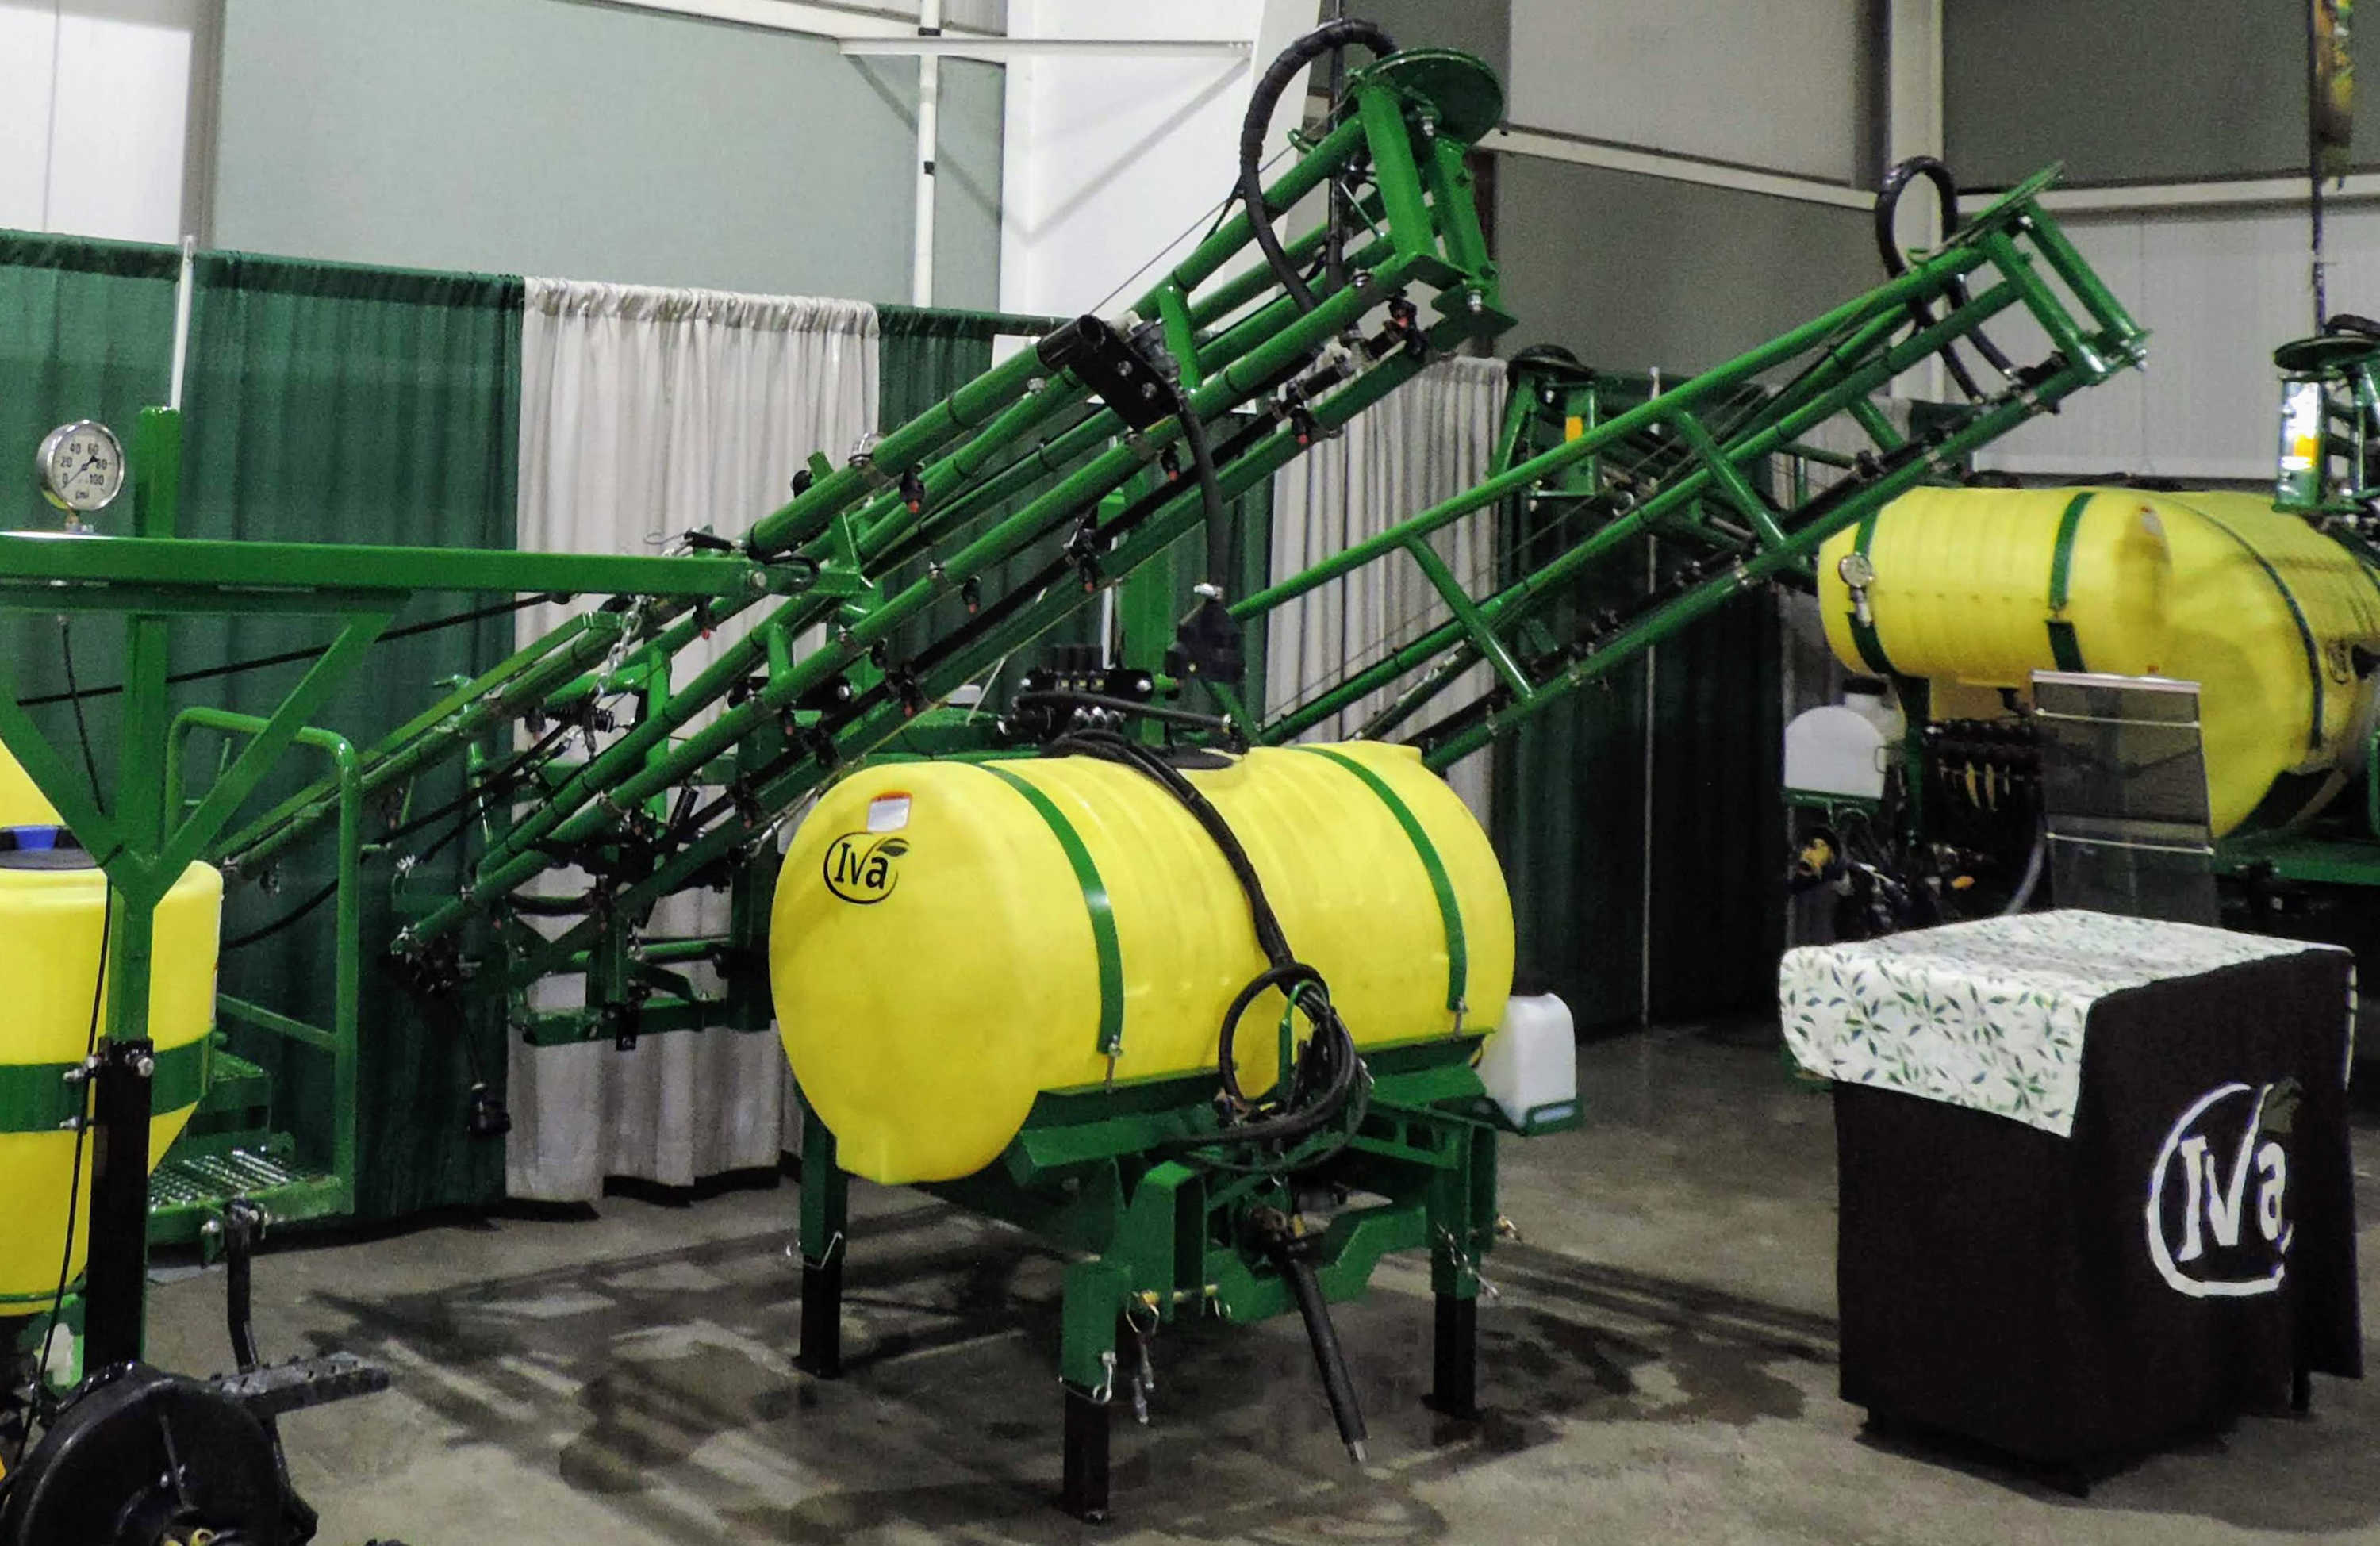 200 gallon 3-point Mounted Sprayer with 45' SpringRide booms